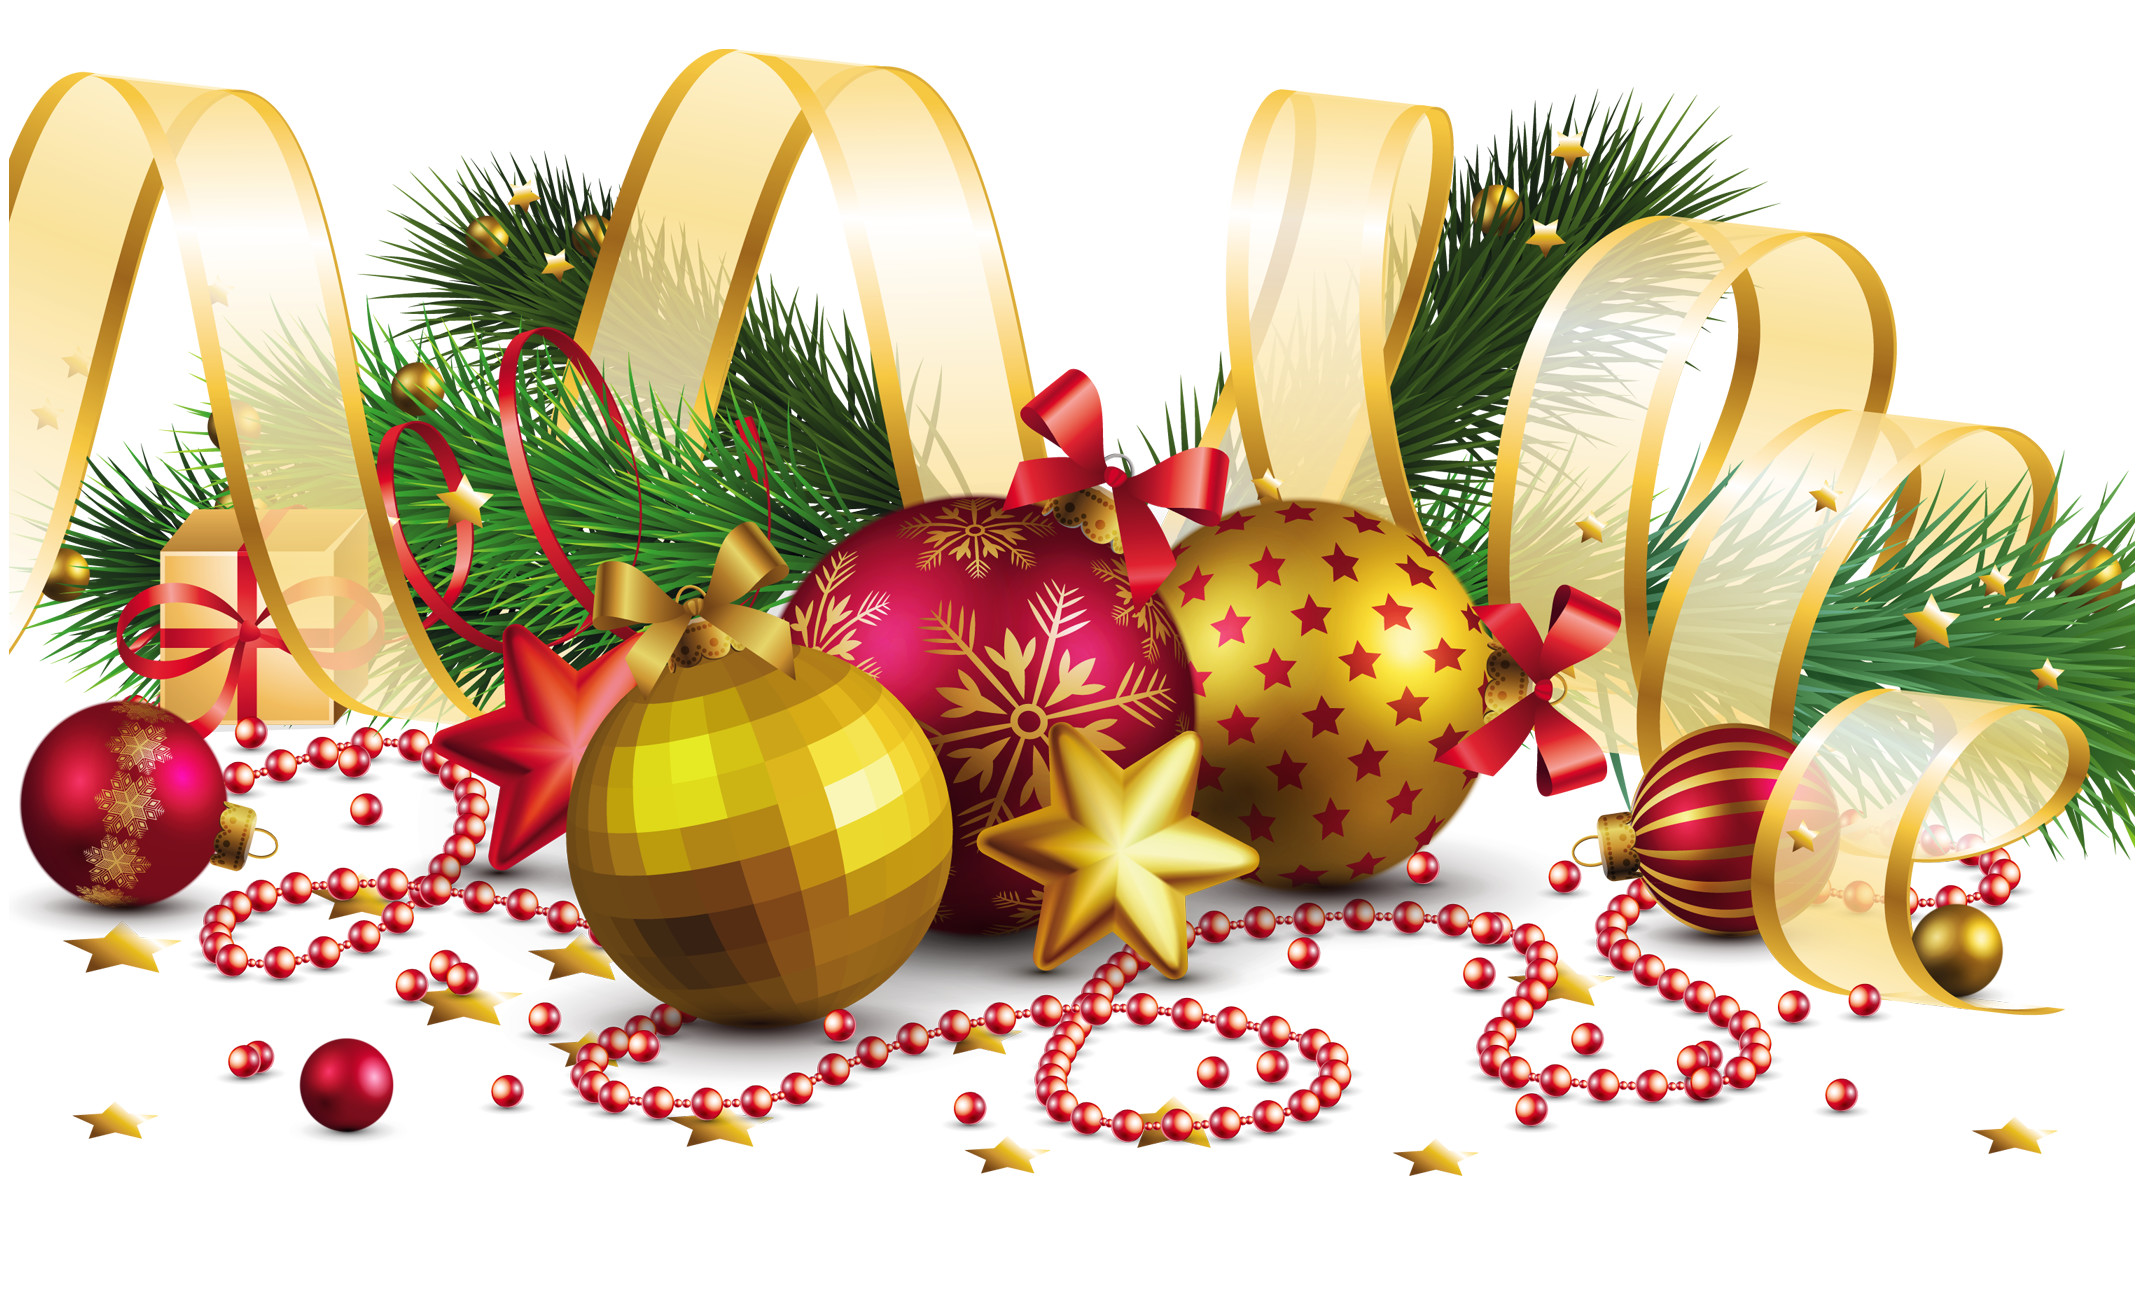 2138x1305 Merry Christmas Png Background With Pin By Ken Mastin On Frames Wallpaper  Pinterest